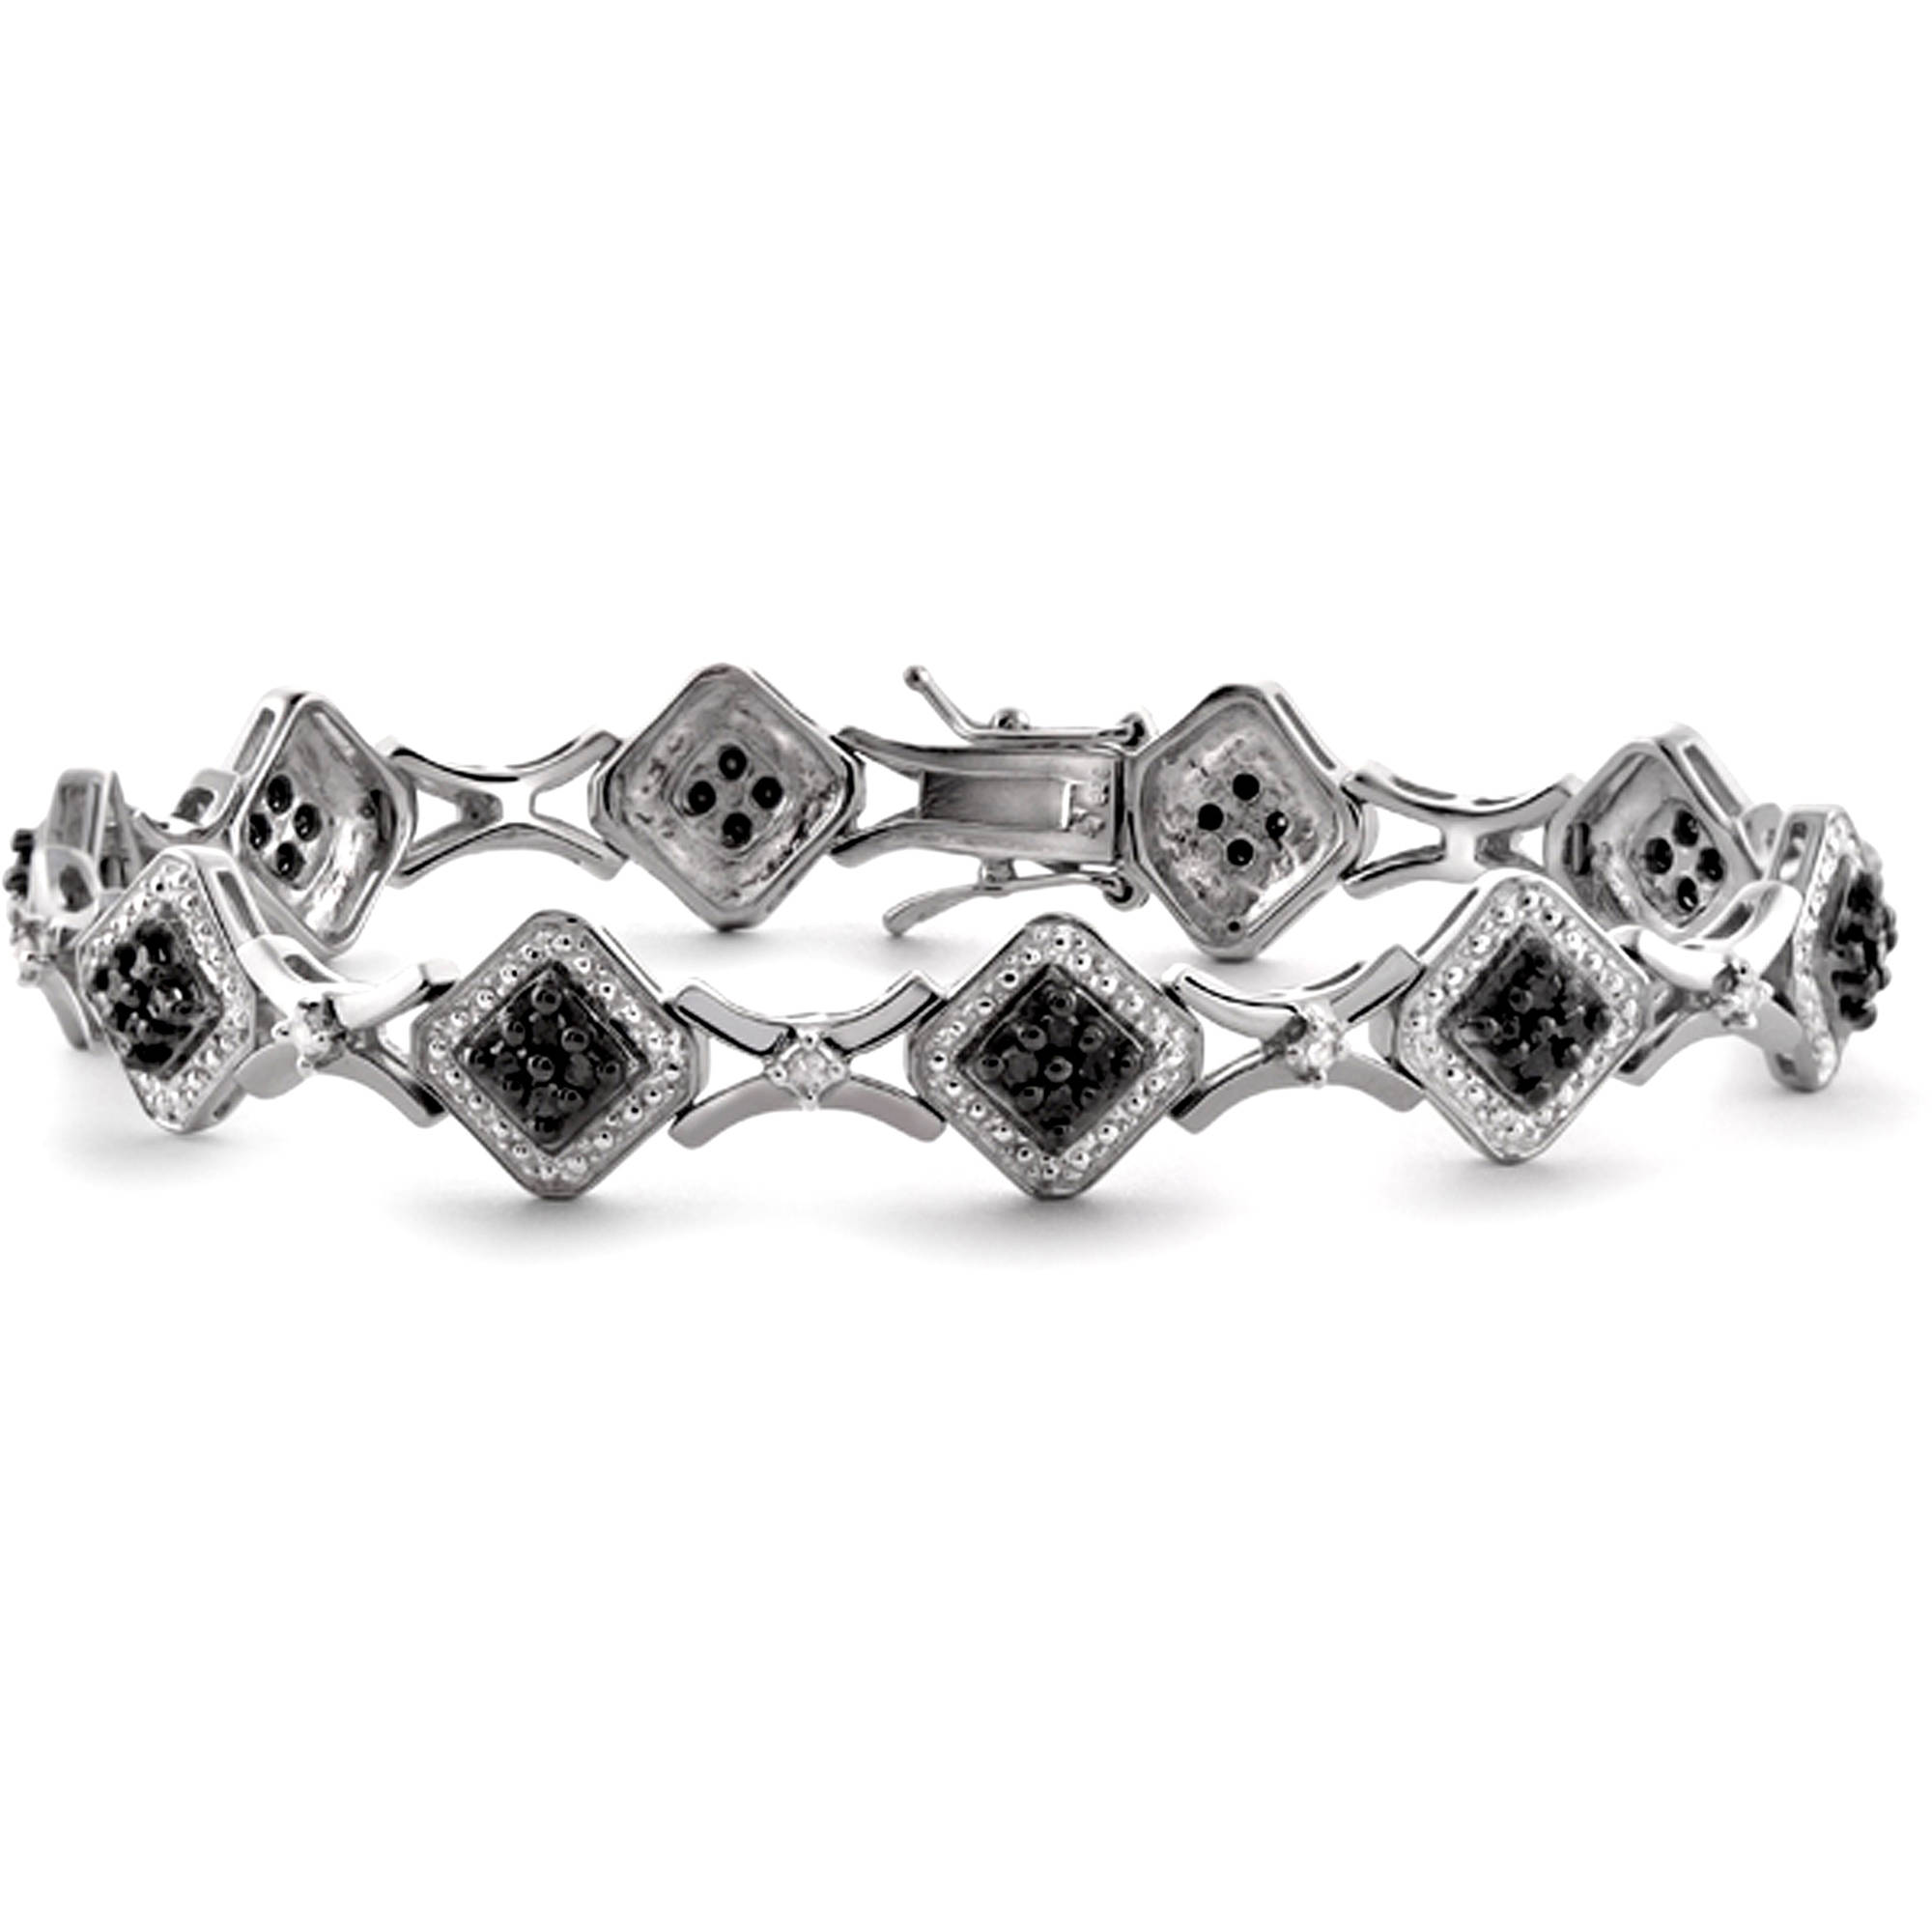 JewelersClub 1.00 Carat T.W. Black and White Diamond Sterling Silver Bracelet